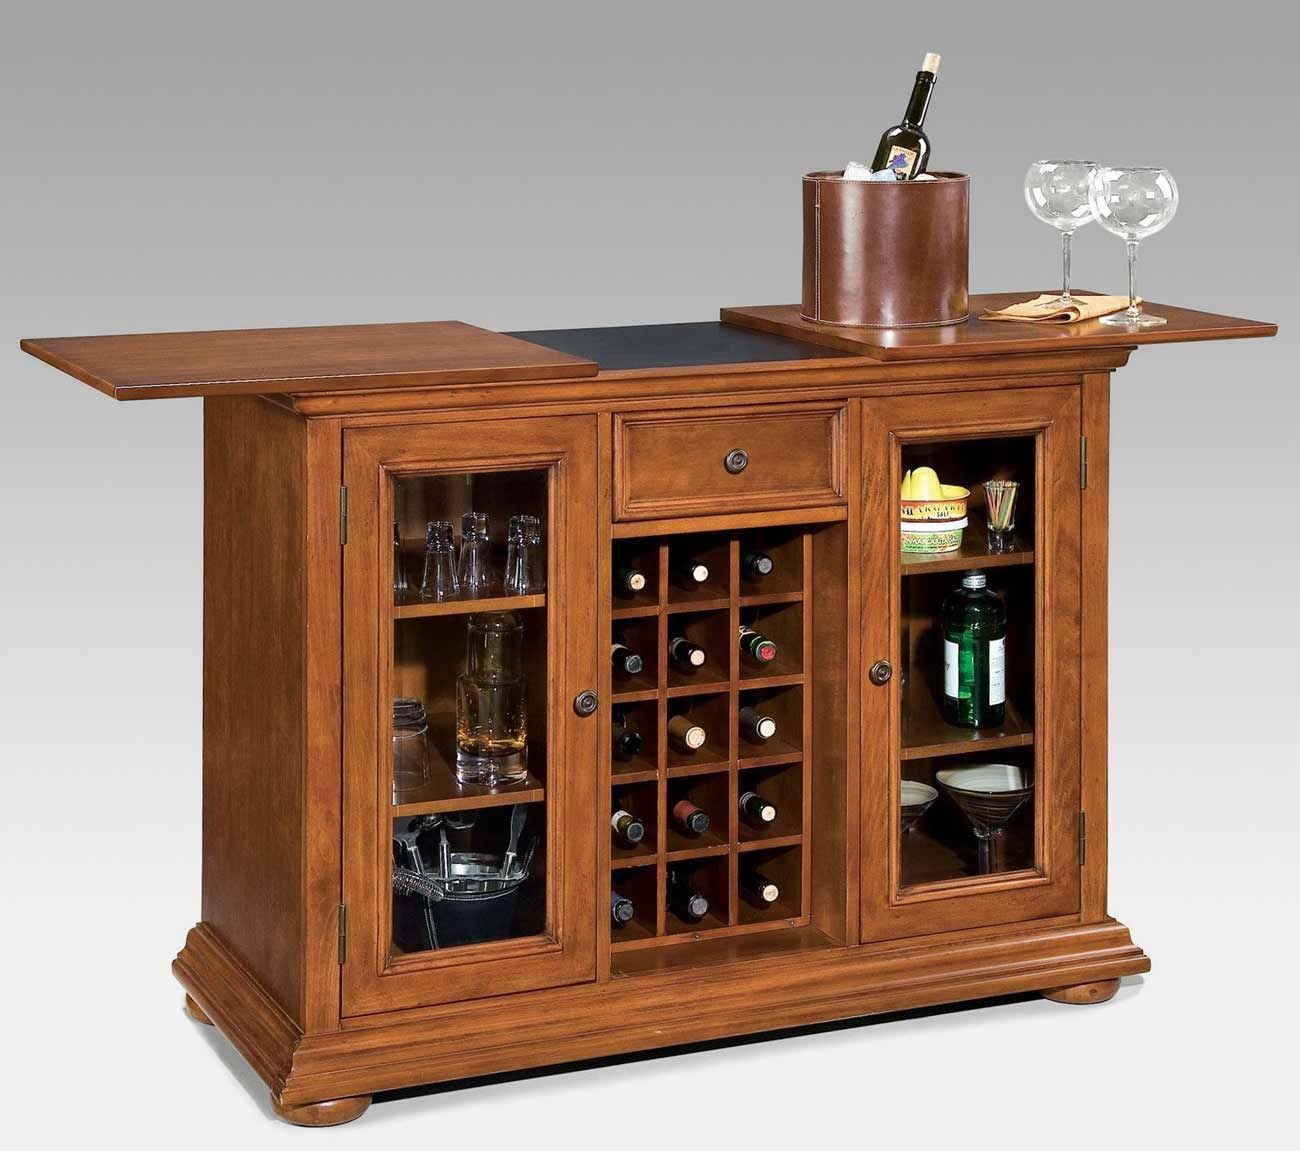 Liquor Cabinet Bar Furniture #22: 1000+ Images About Drinks Cabinets On Pinterest | Furniture, Crate And Barrel And Cabinets